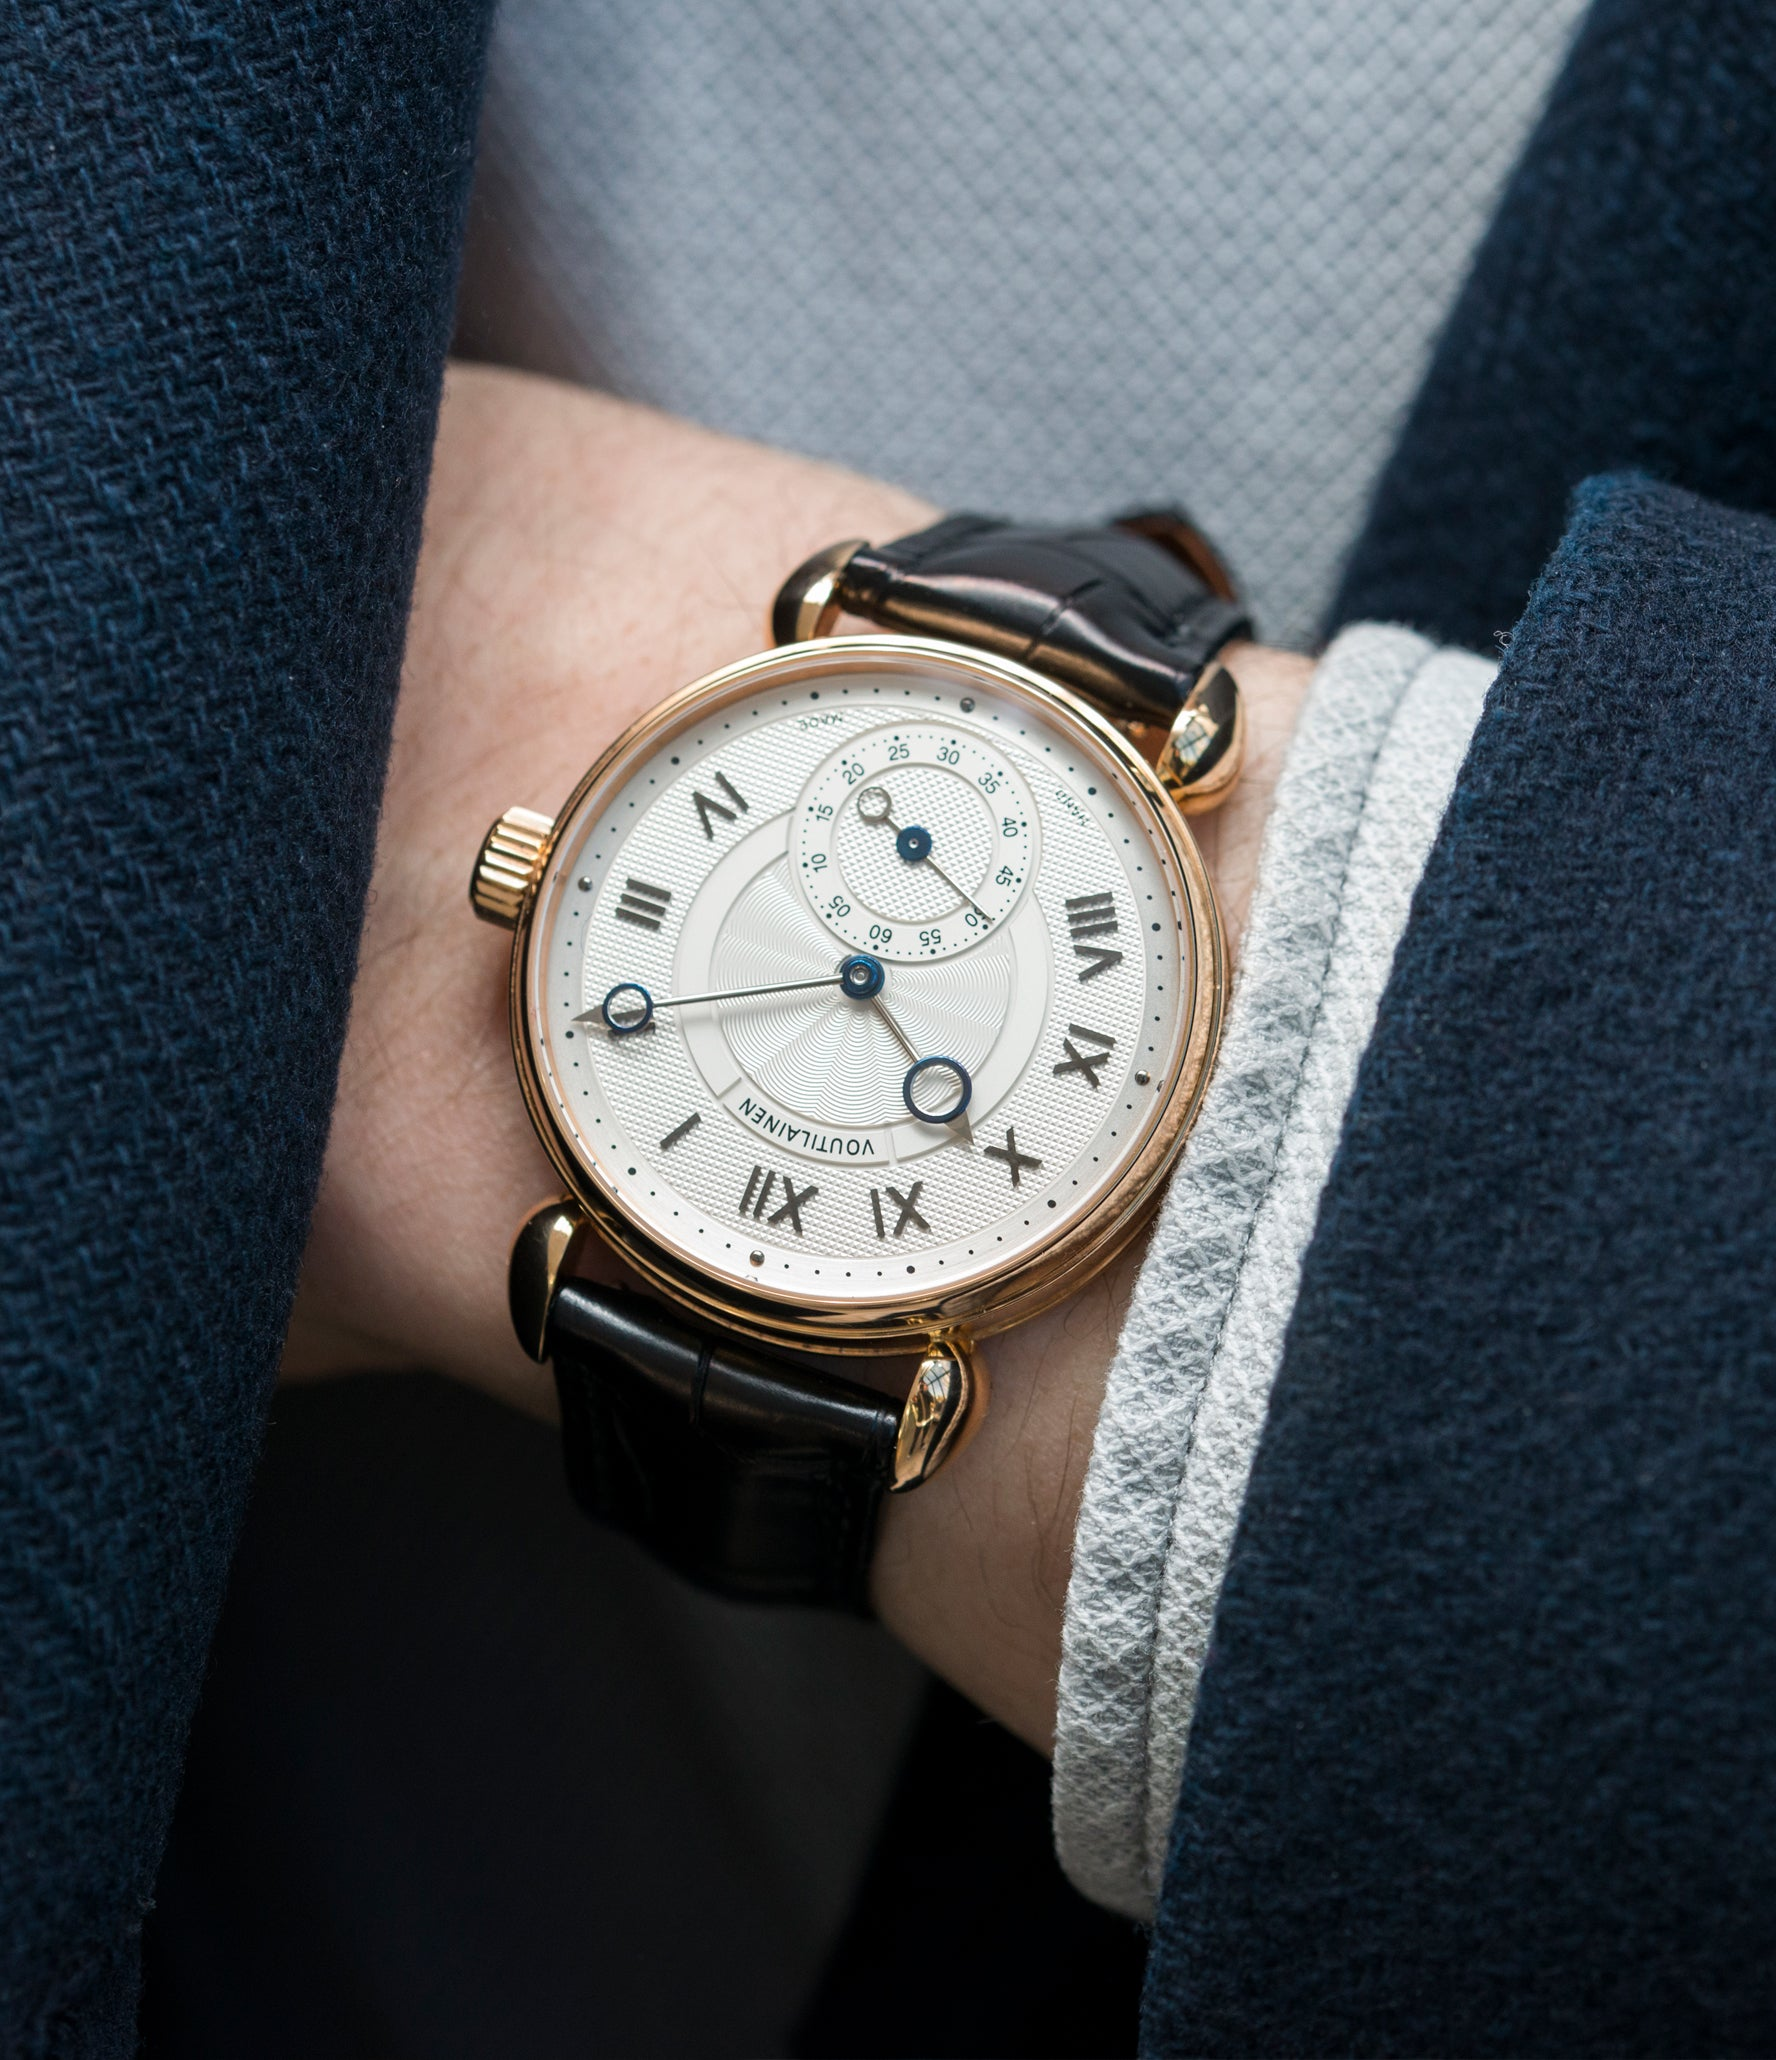 buying Kari Voutilainen Observatoire Limited Edition rose gold rare dress watch for sale online at A Collected Man London endorsed seller of independent watchmaker